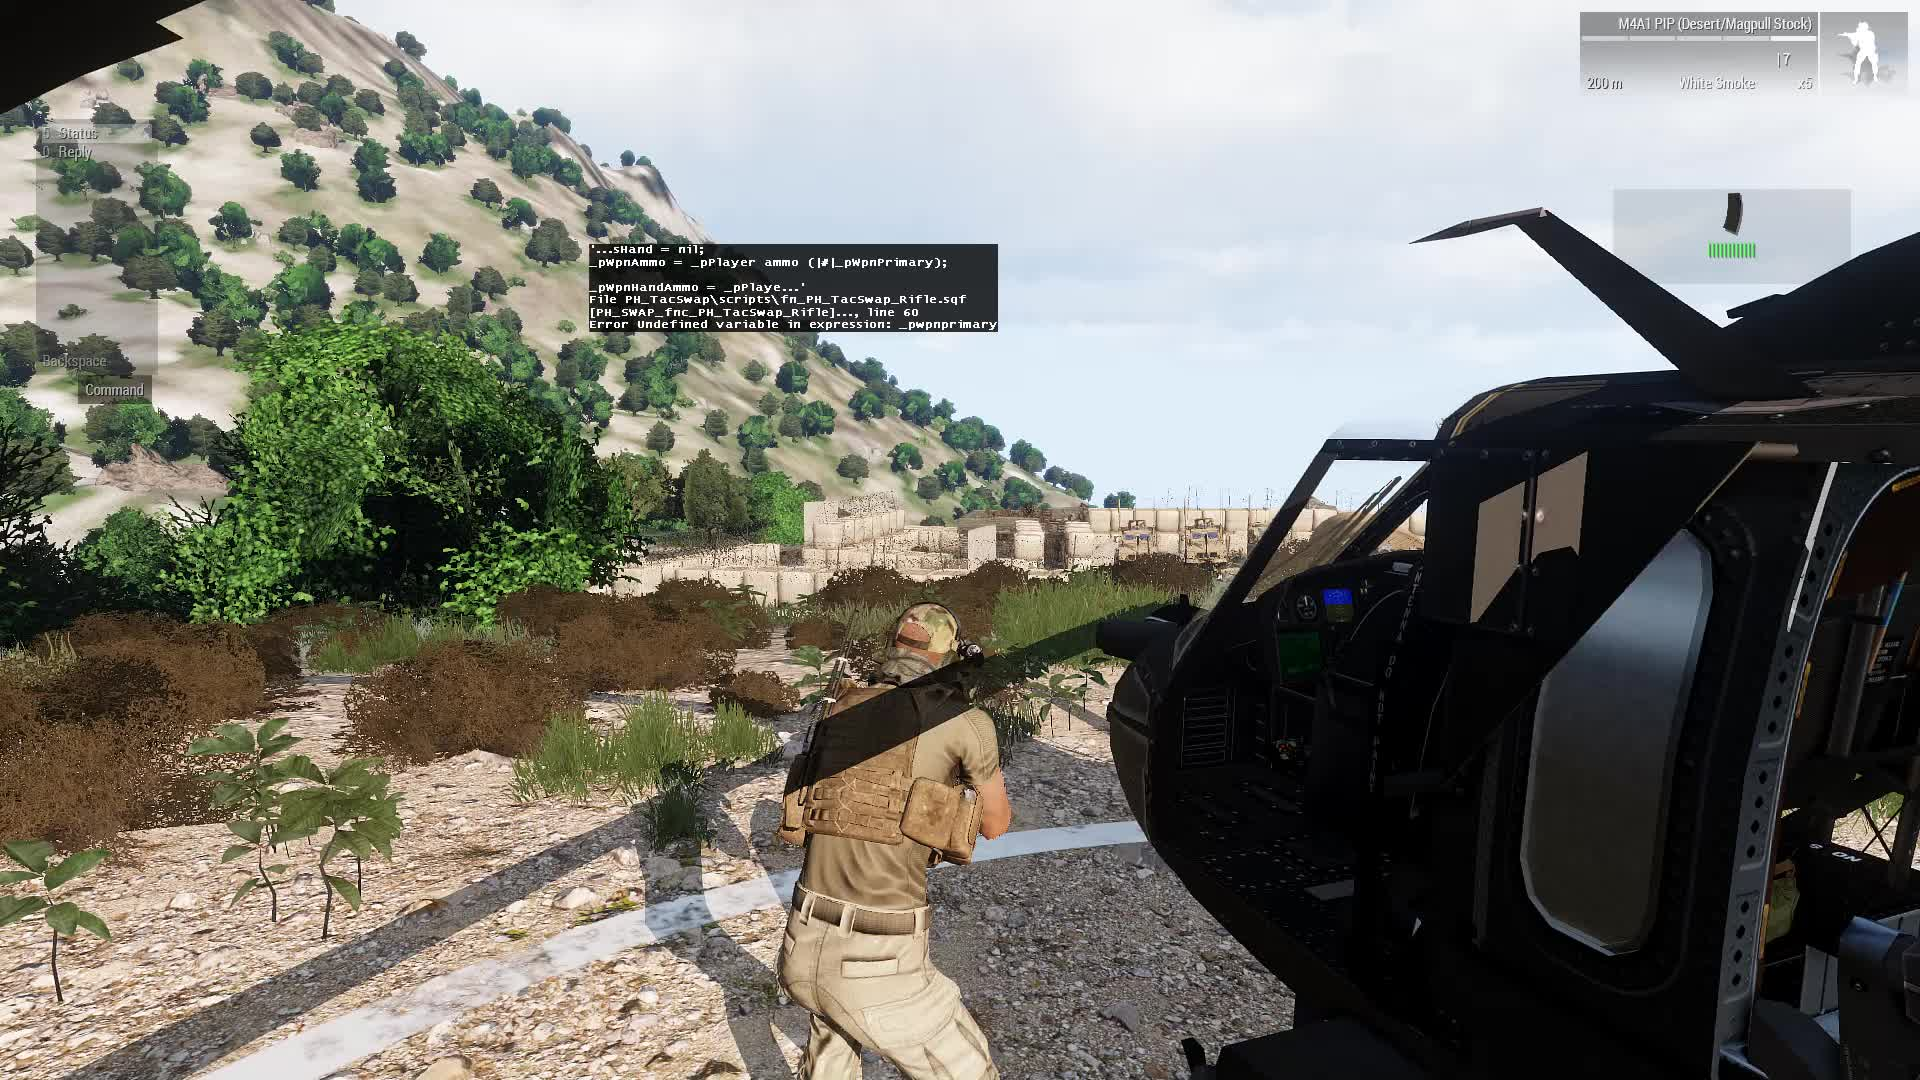 Arma 3 2019 12 01 07 03 15 01 Gif Gfycat Pagesotherbrandproduct/servicedave modz customsvideostac swap reps. gfycat